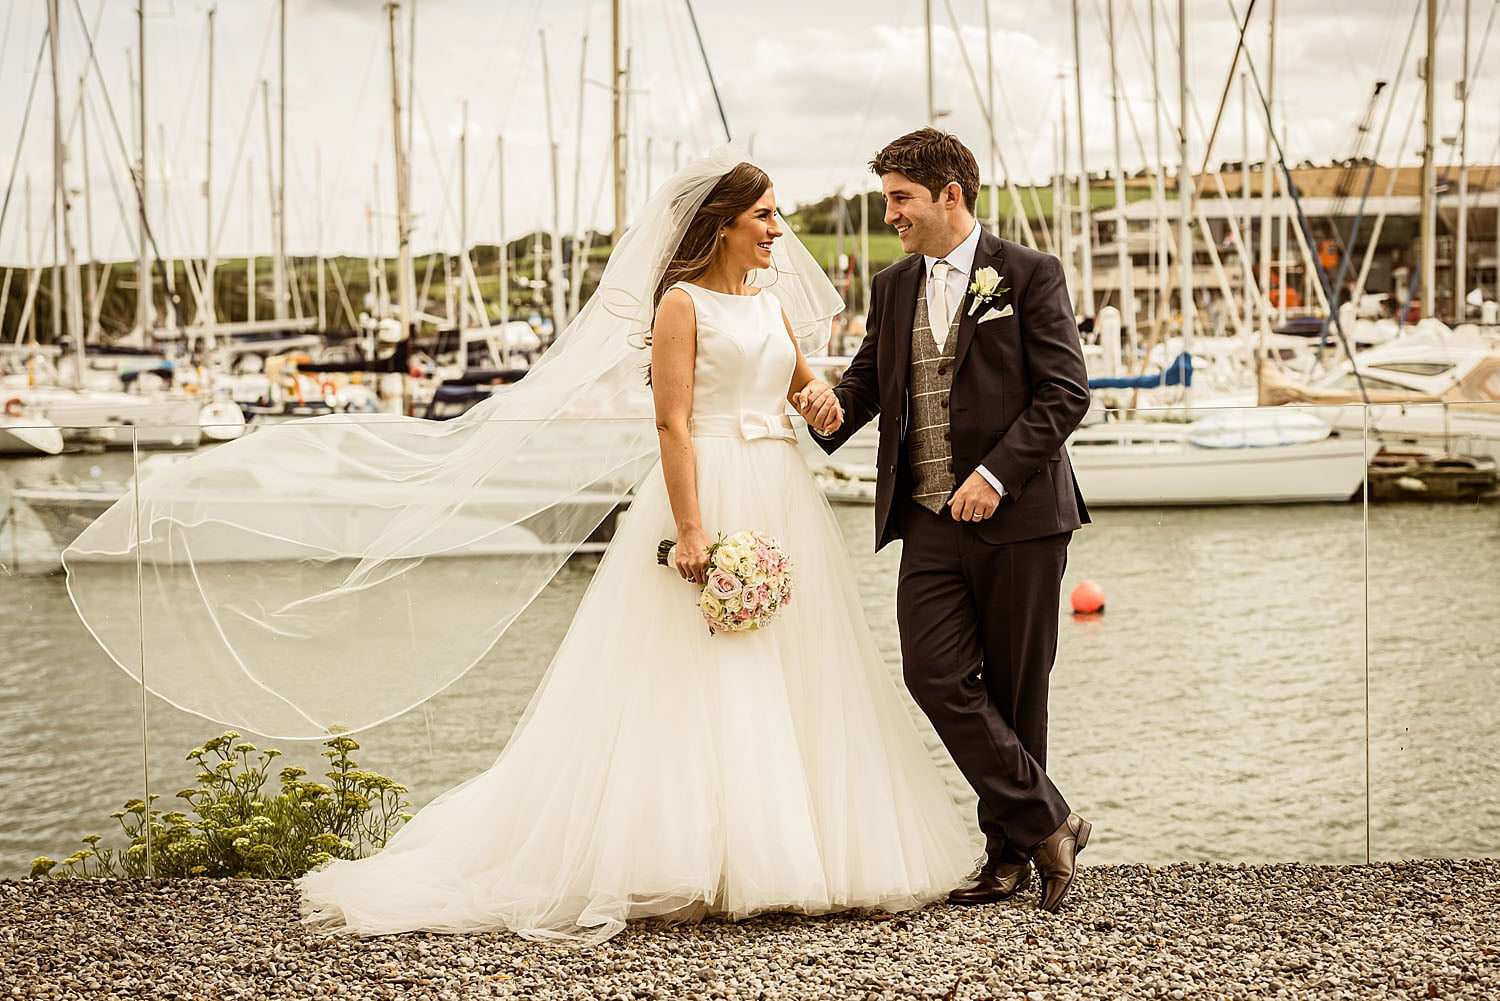 30_Kinsale-Hotel-Weddings_061_Kate-Barry-Album_D51_6035-copy